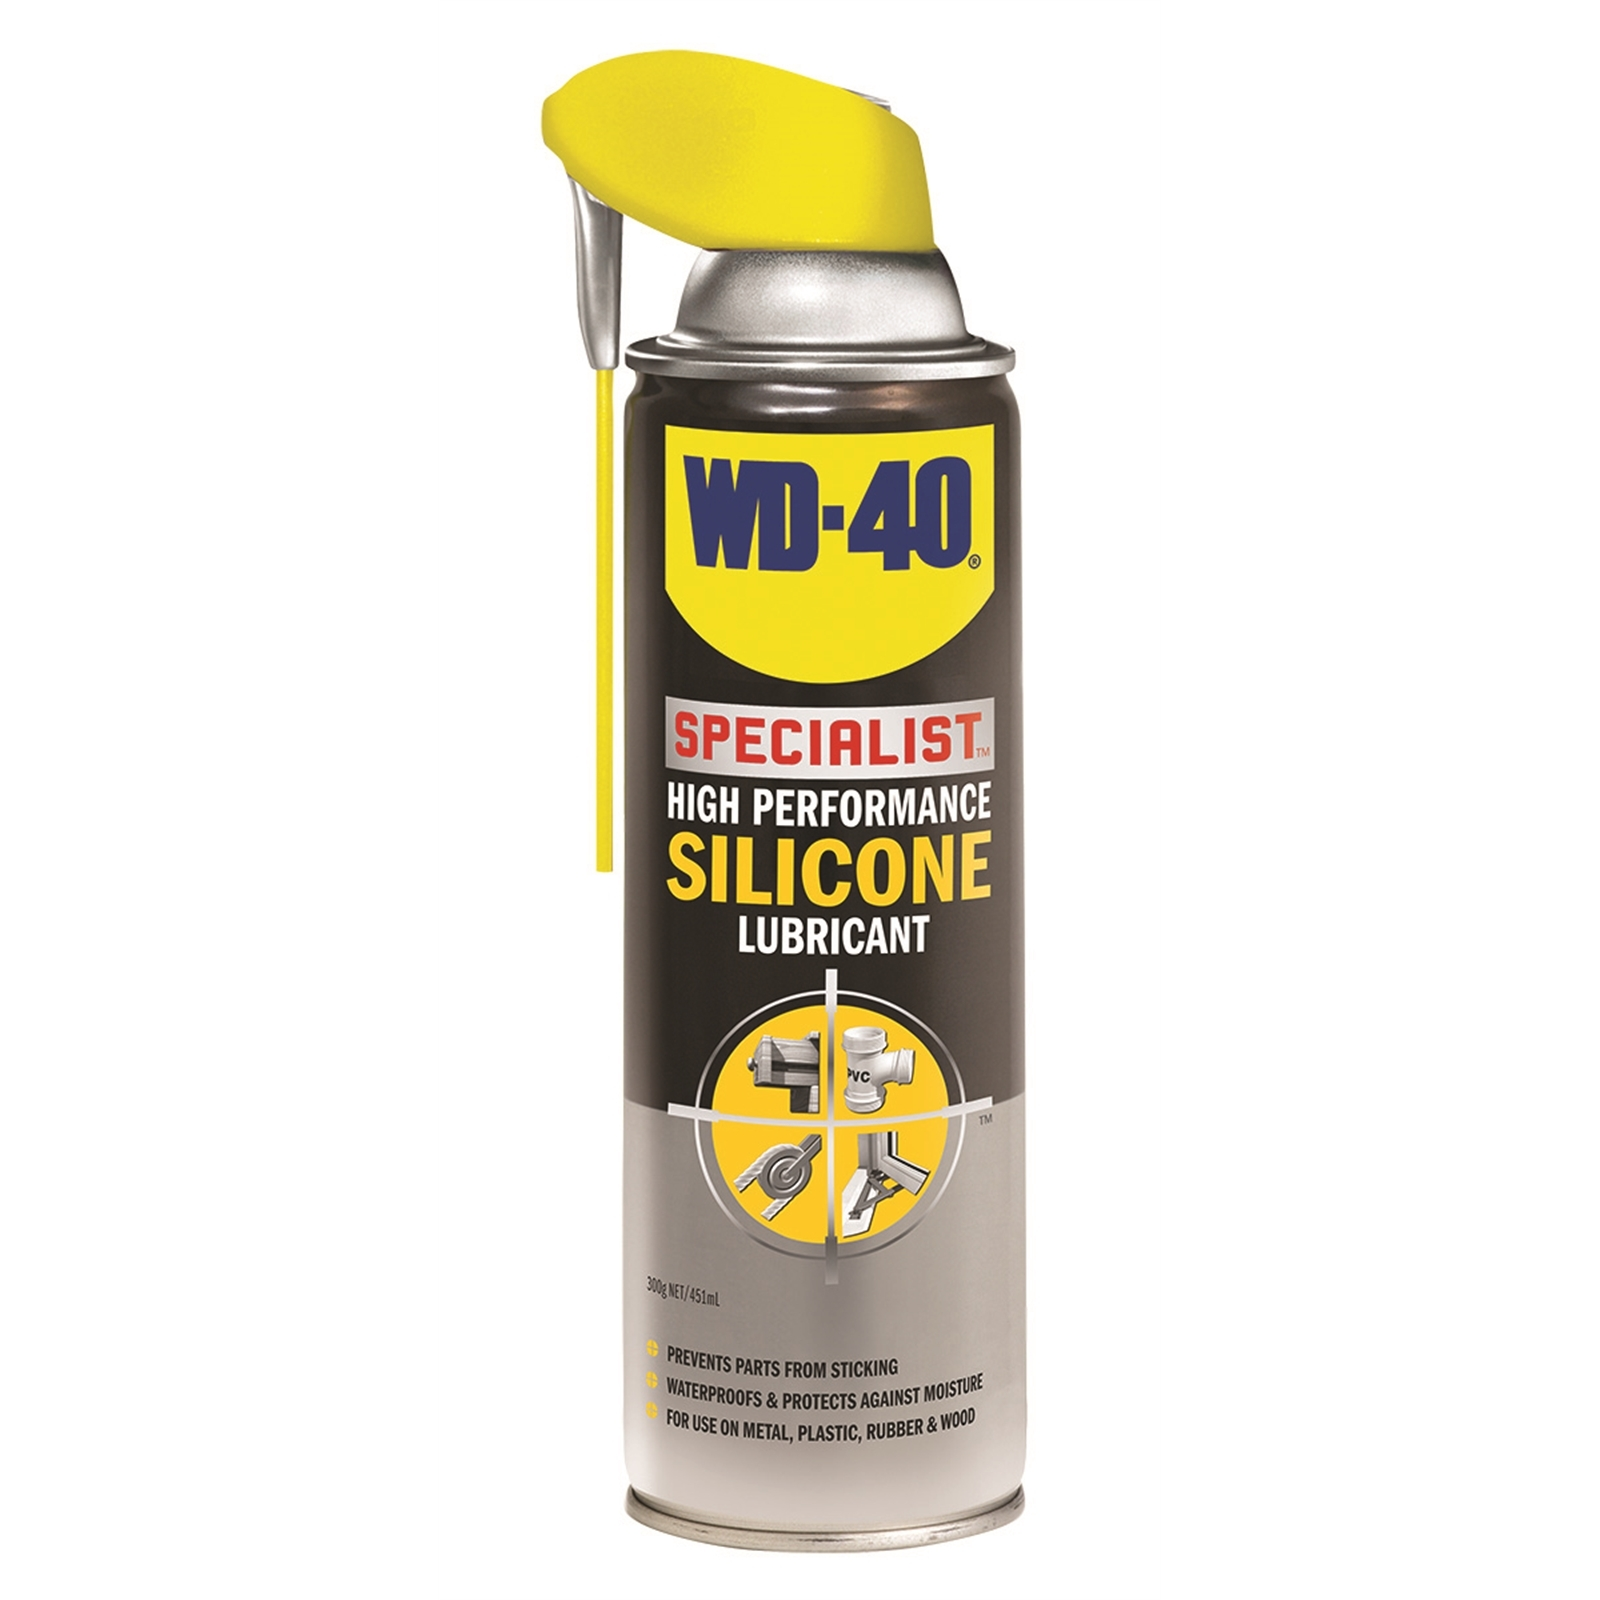 WD-40 Specialist High Performance Silicone Lubricant 300g Clear